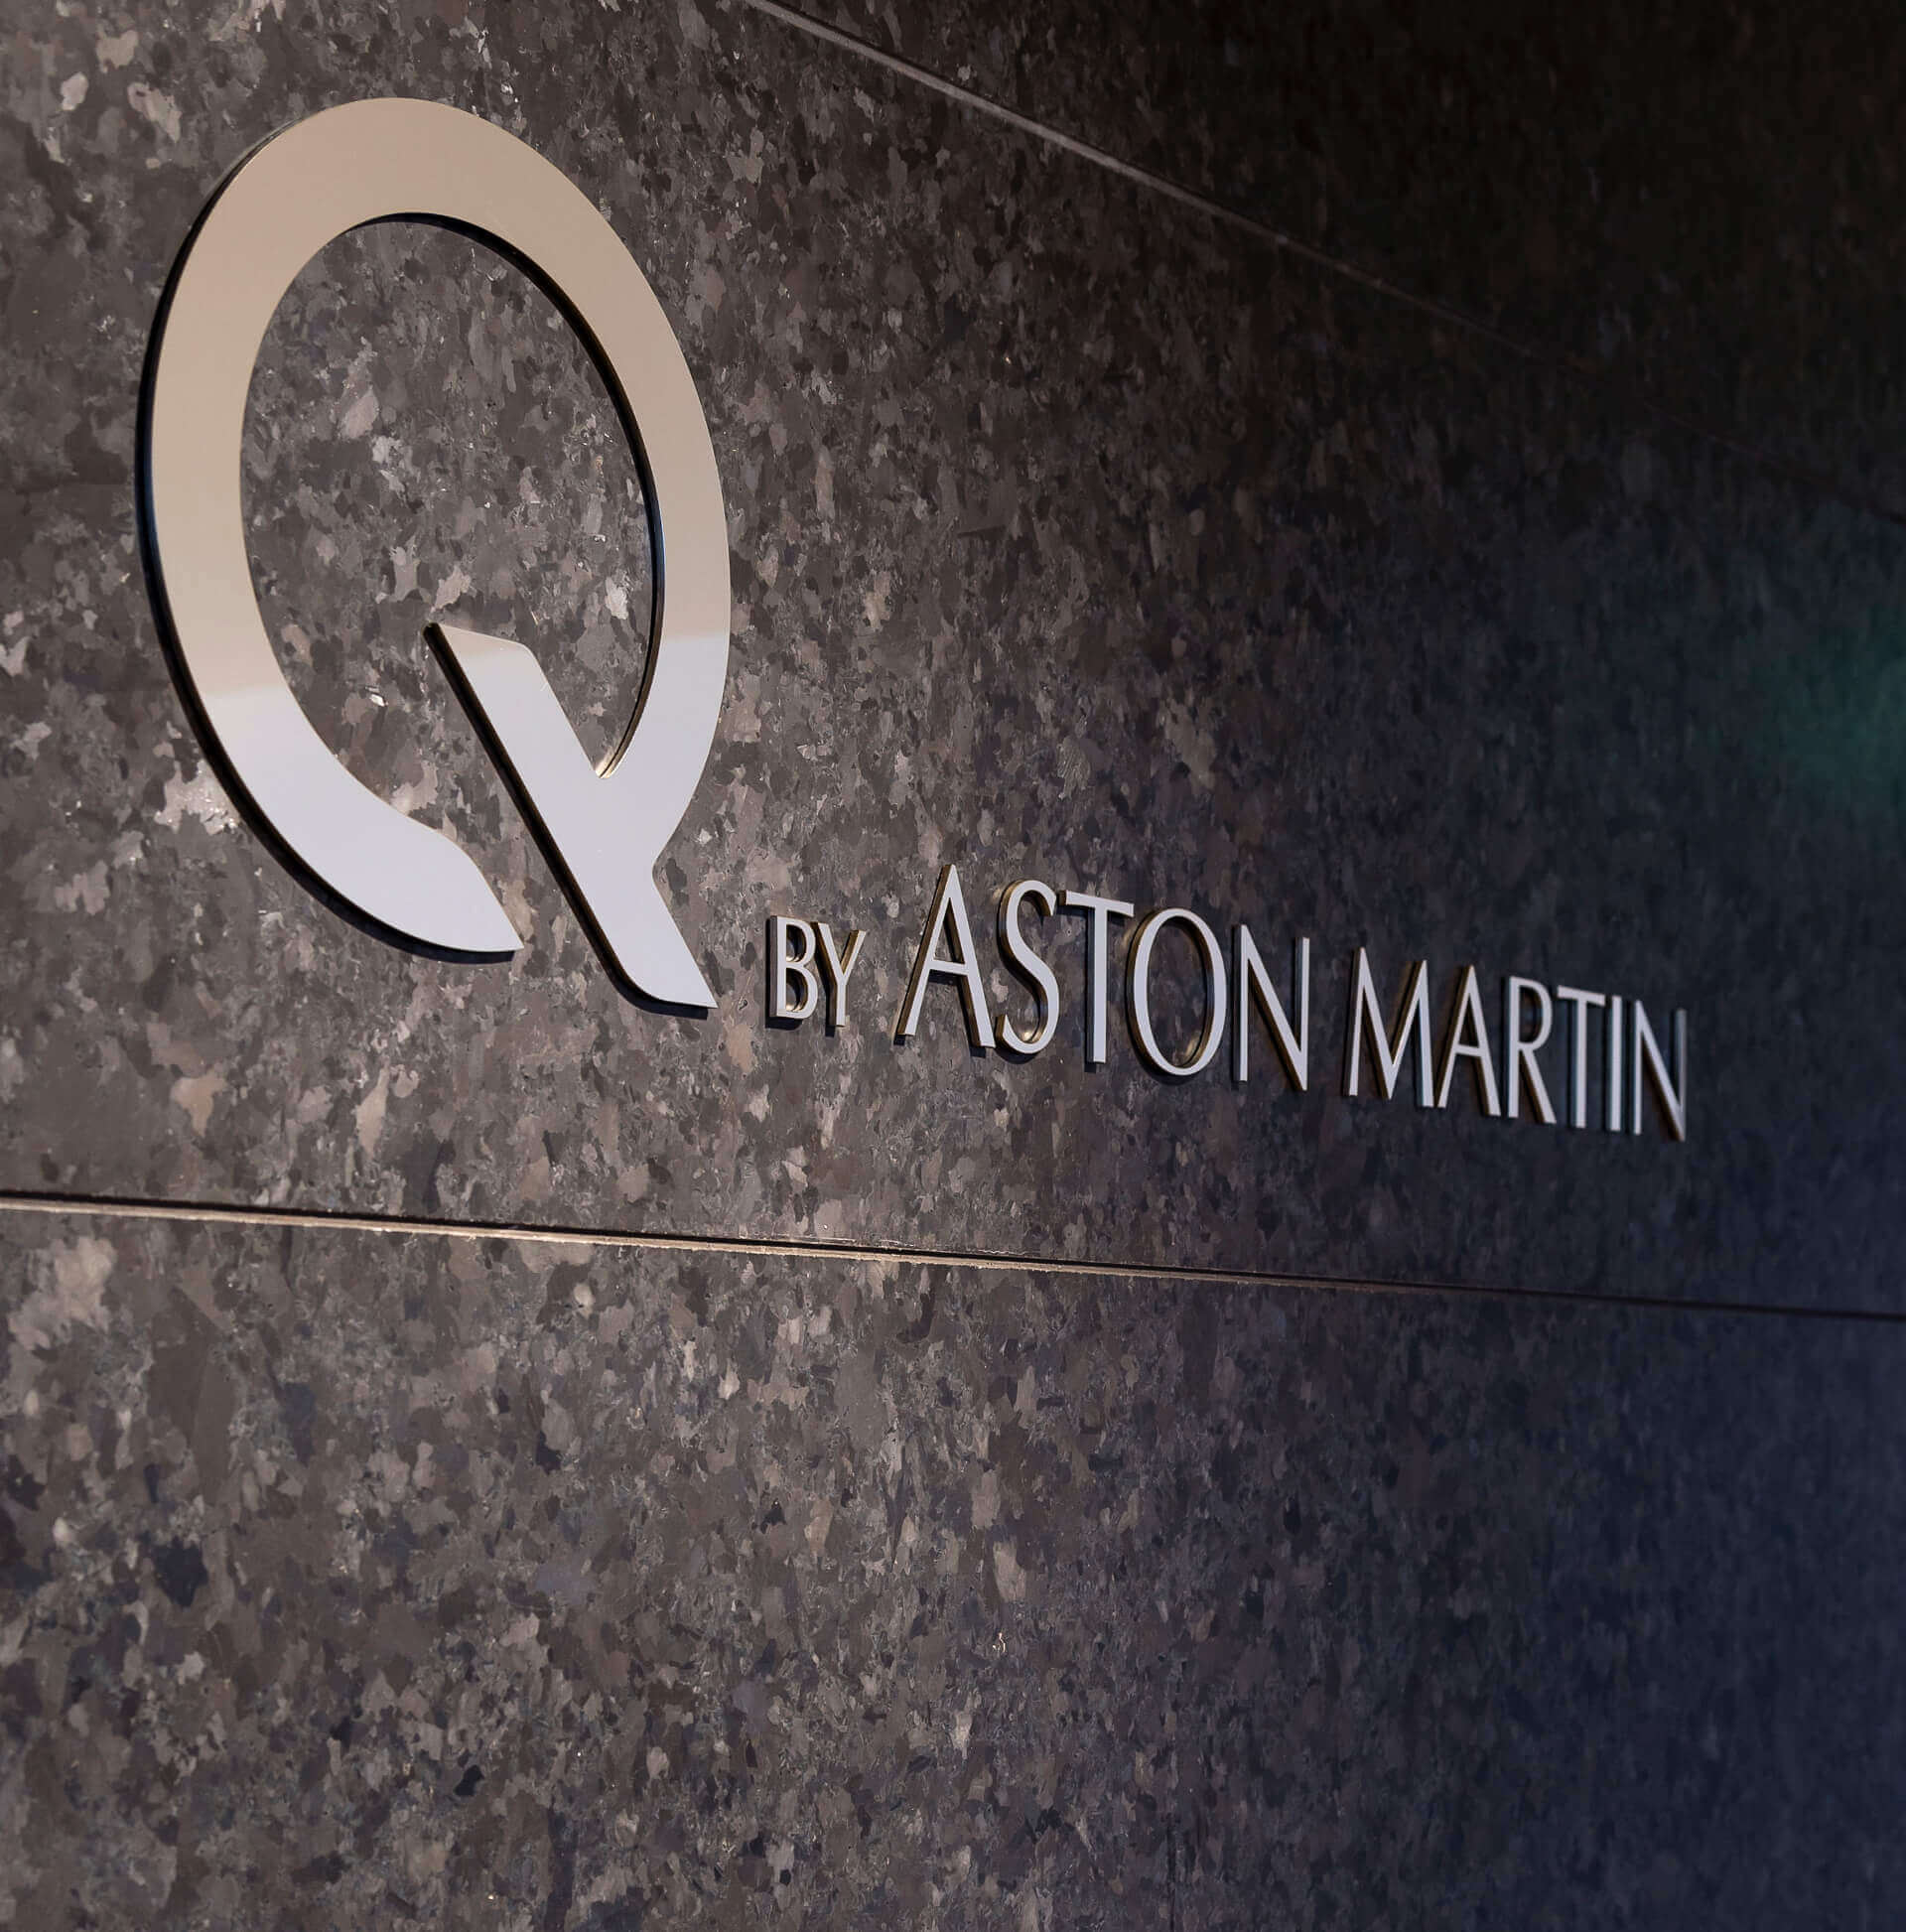 Q by Aston Martin Gold Wall Sign